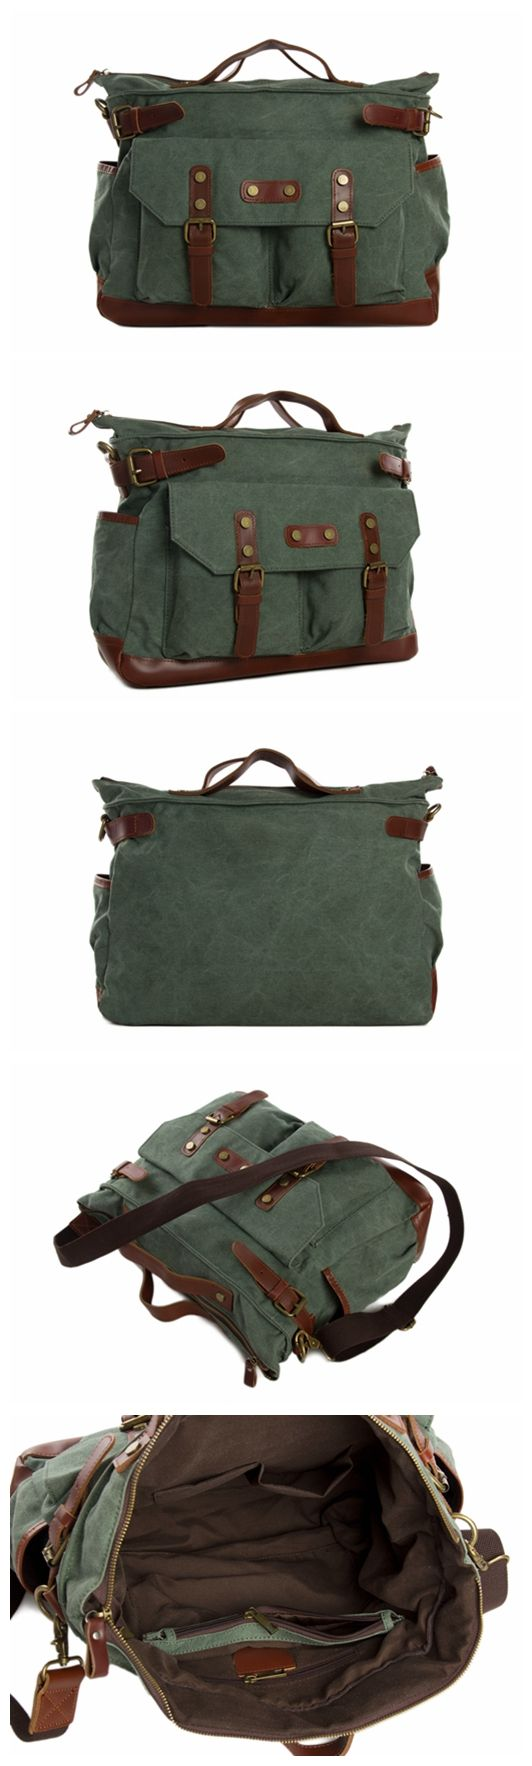 Canvas Leather Briefcase Messenger Bag, Waxed Canvas Laptop Bag Travel Briefcase